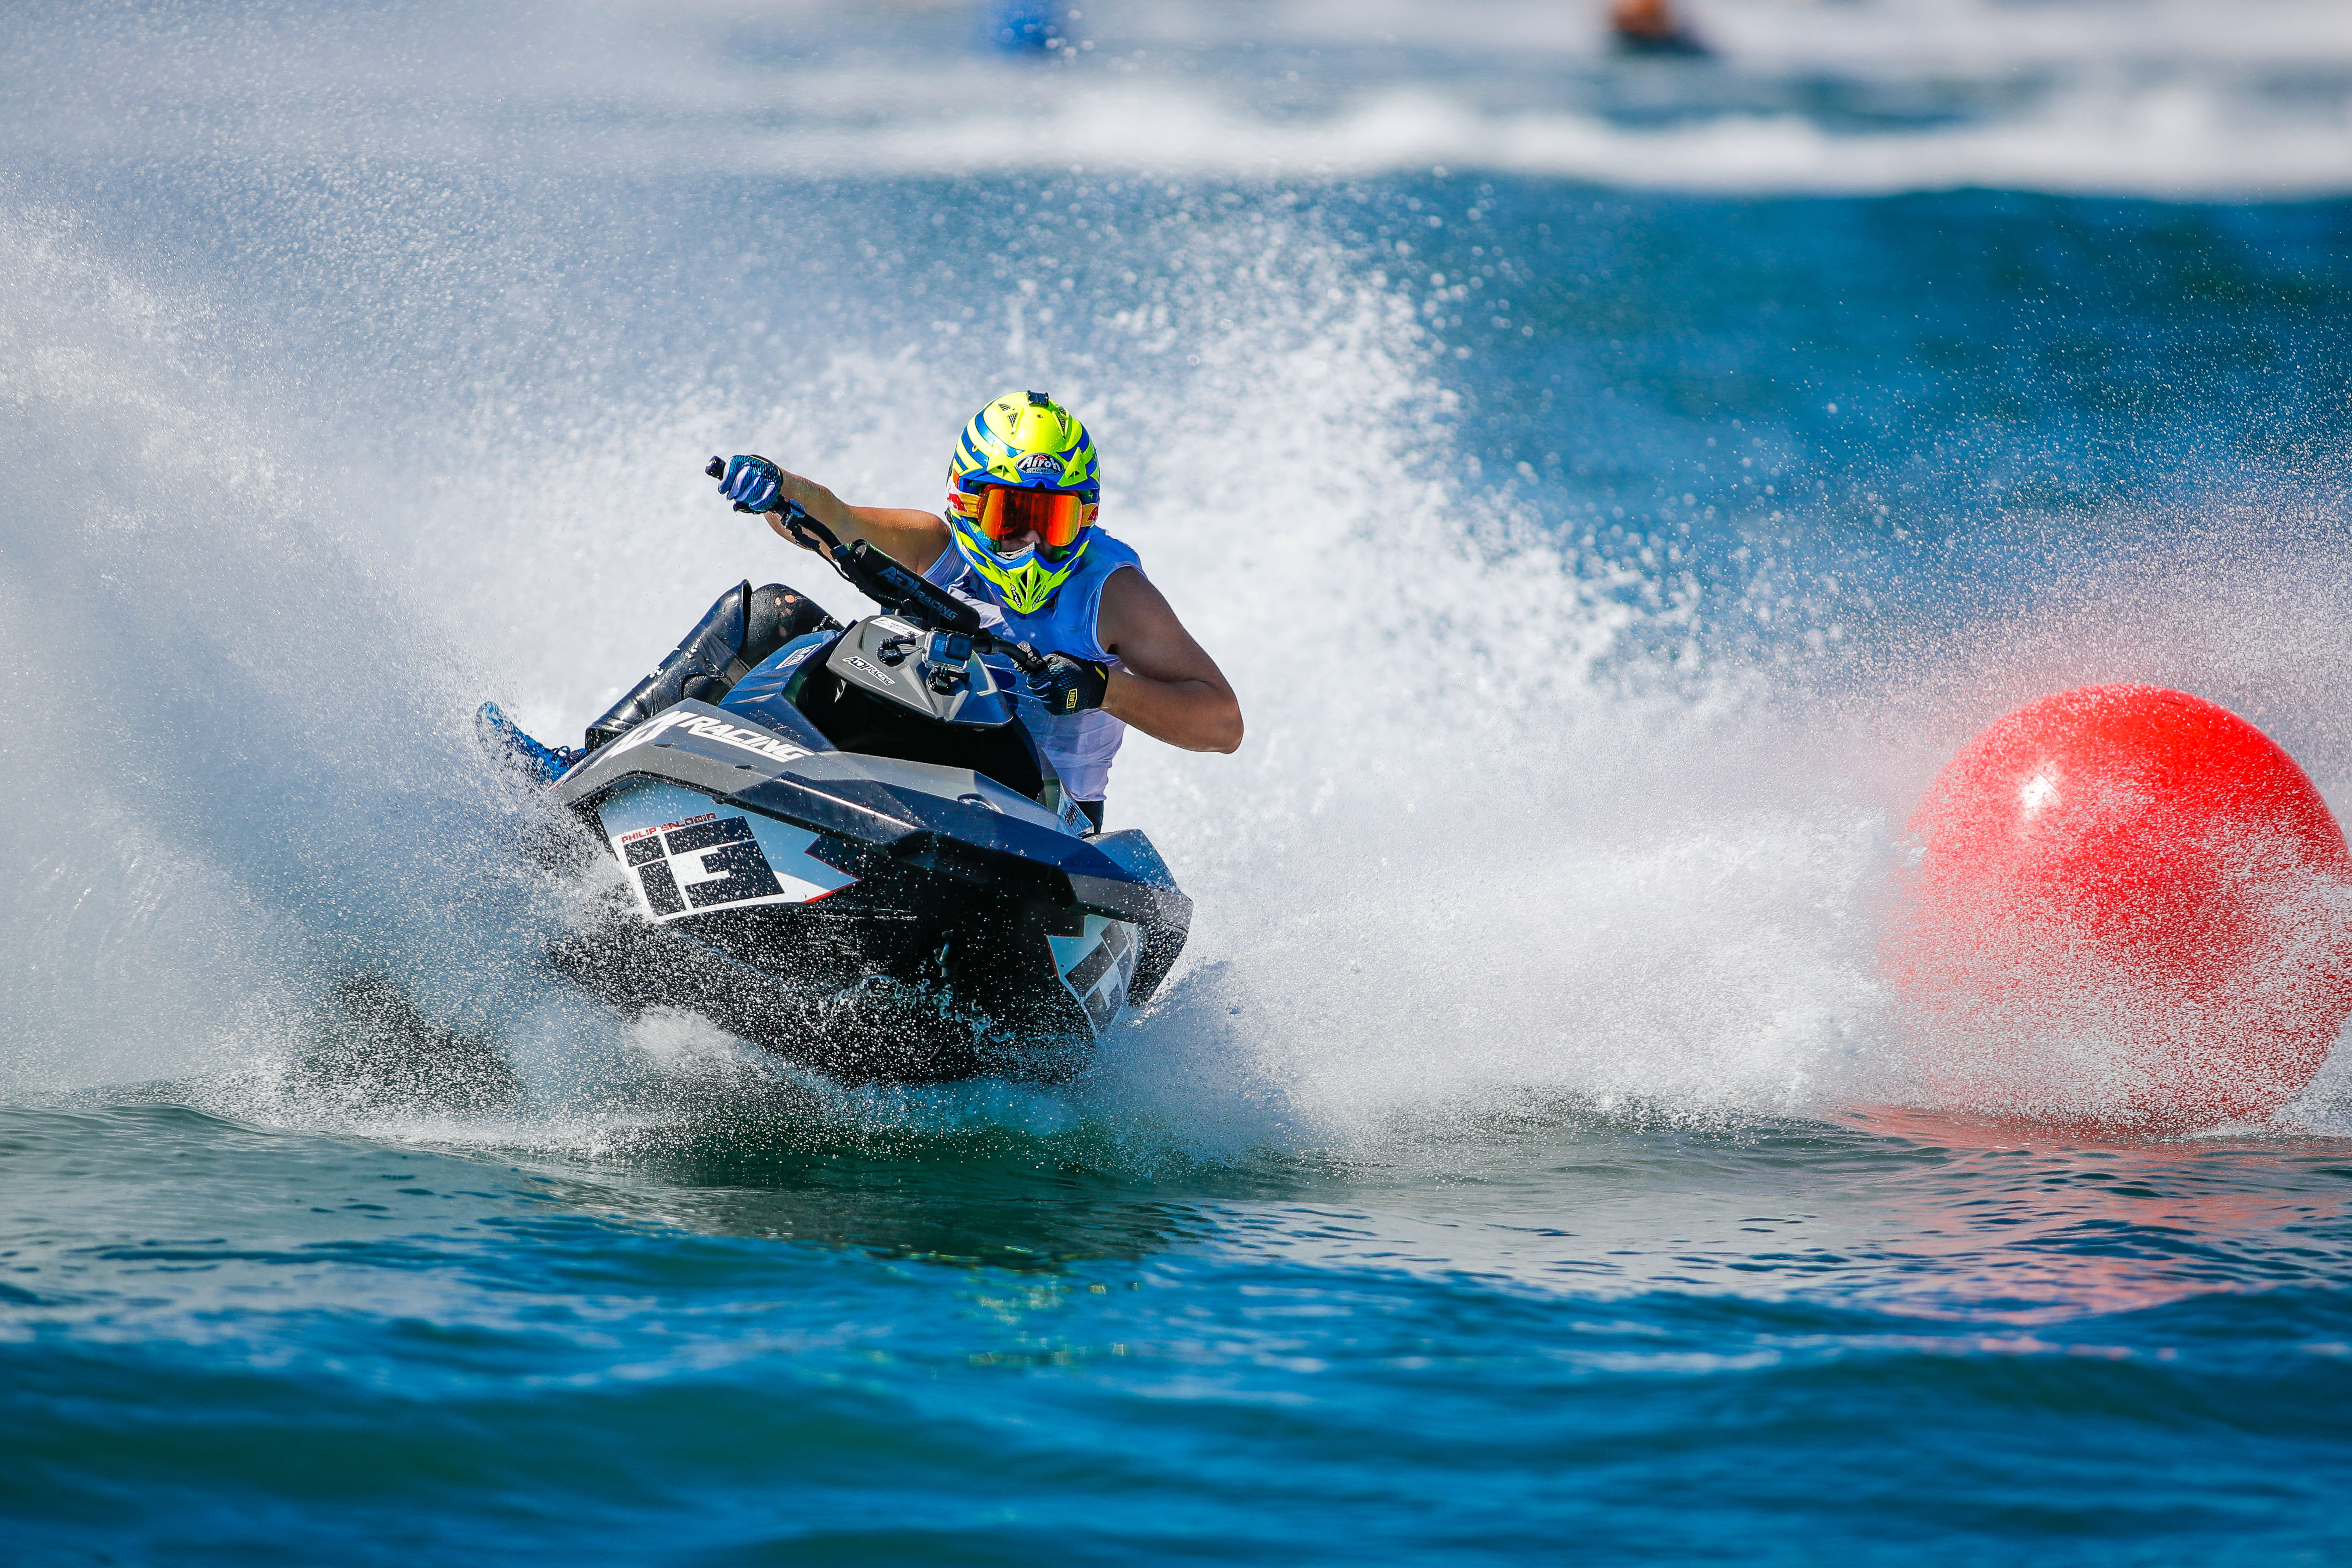 SALOBIR ON COURSE TO RETAIN RUNABOUT GP4 TITLE